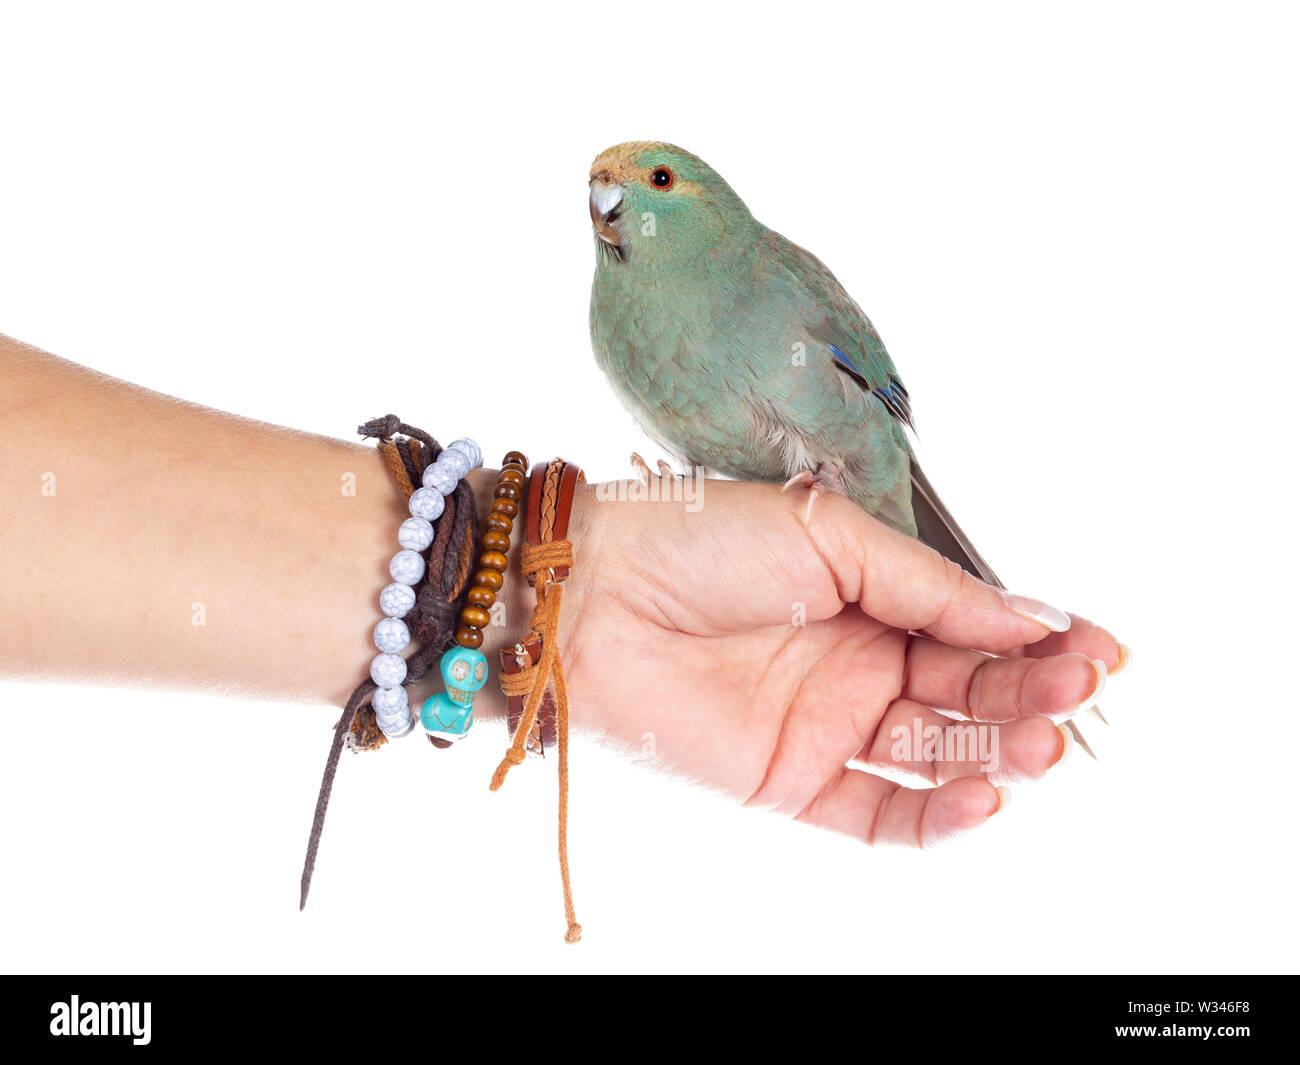 Curious turquoise Kakariki bird sitting side ways on human hand, looking at camera with cute head tilt. Isolated on white background. - Stock Image